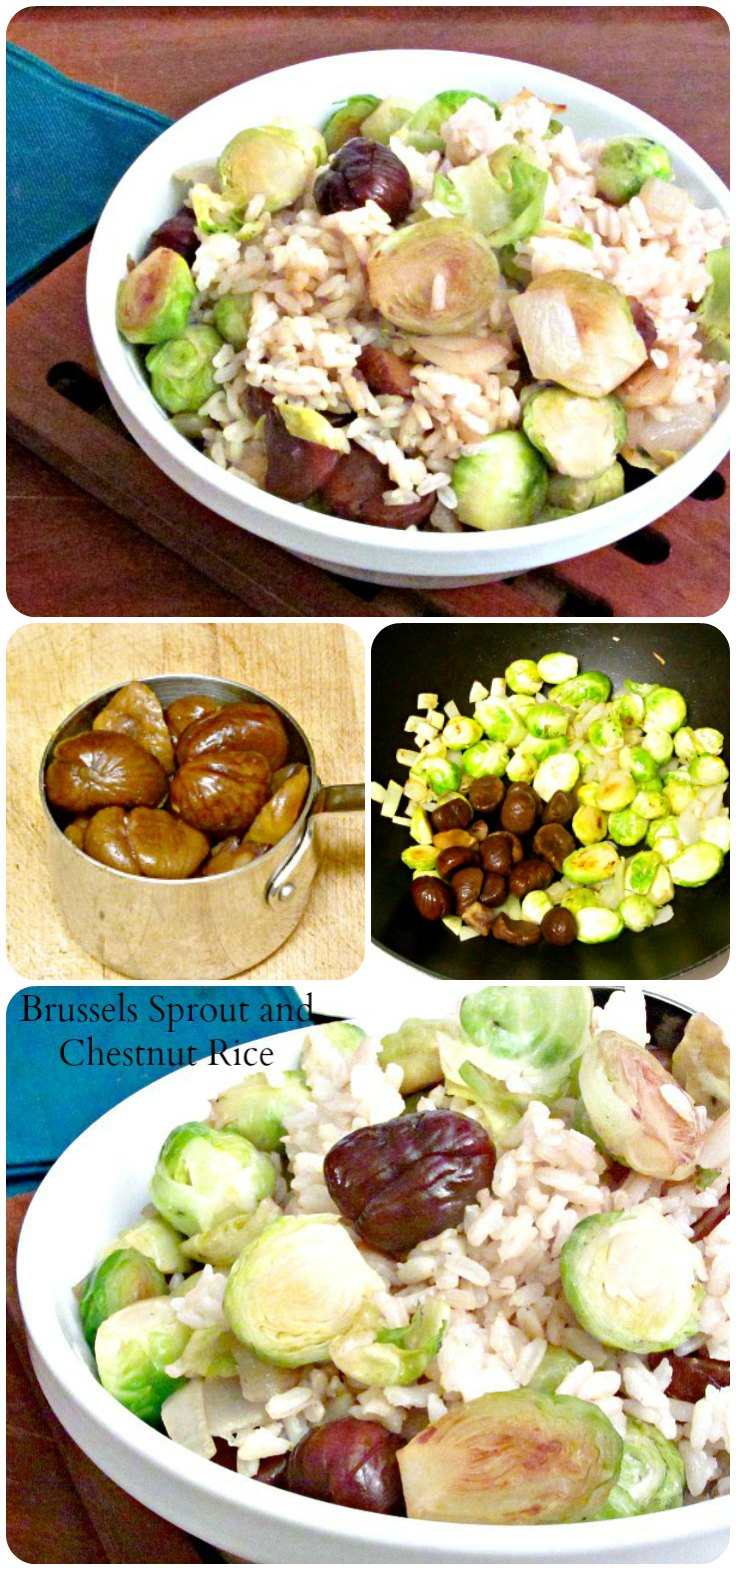 Brussels Sprouts and chestnuts, tossed in cooked rice, for a festive and delicious winter side dish.